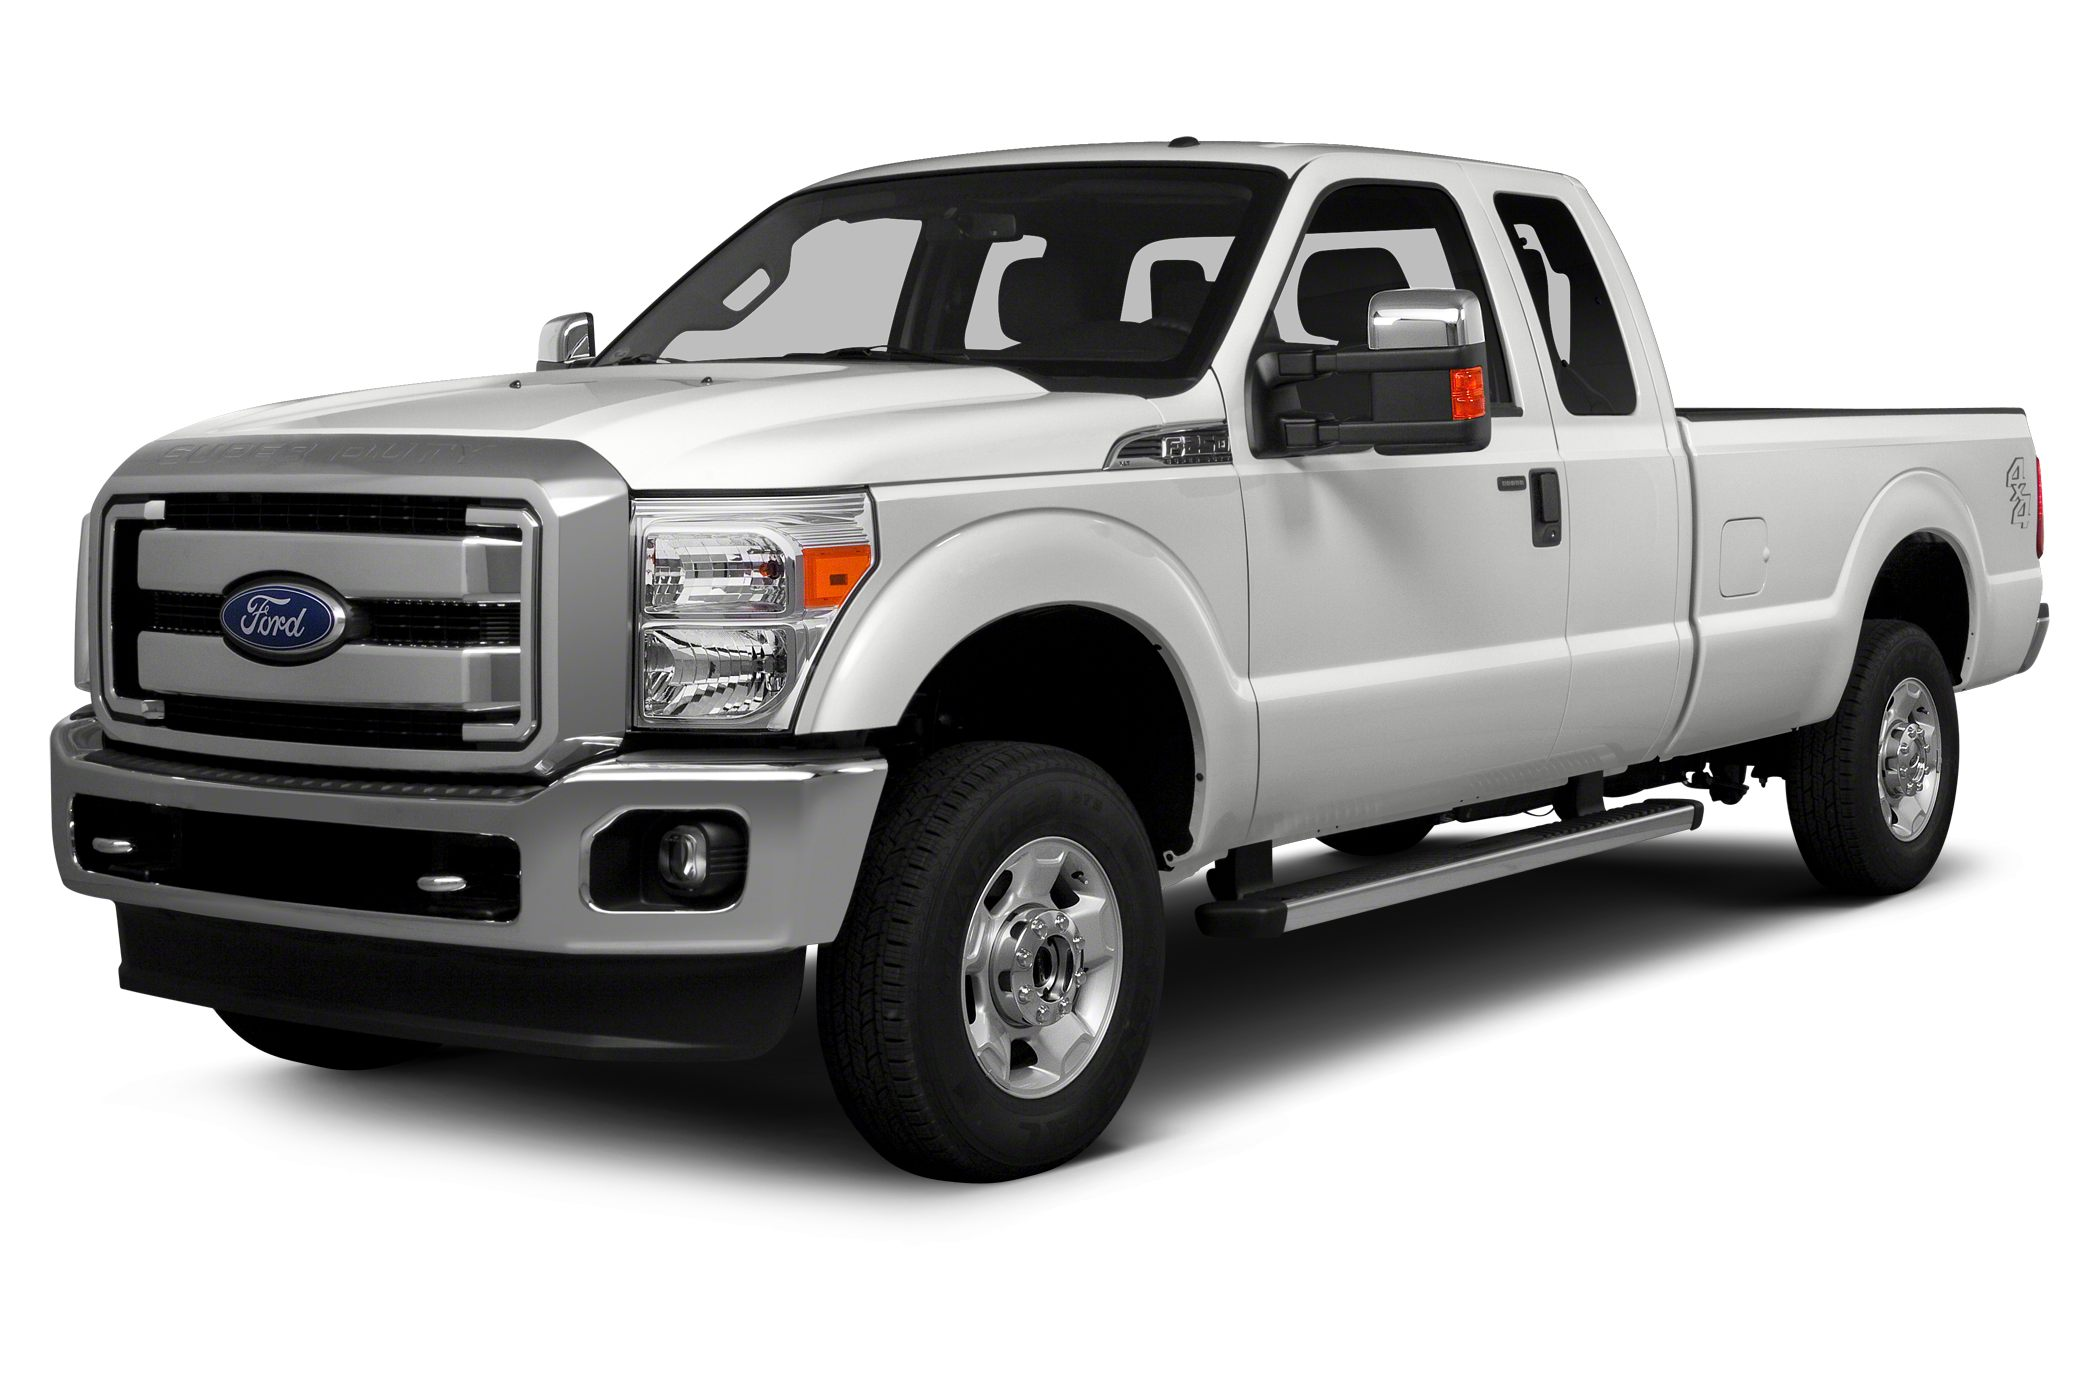 2013 Ford F250 Lariat Crew Cab Pickup for sale in Sterling for $48,420 with 1 miles